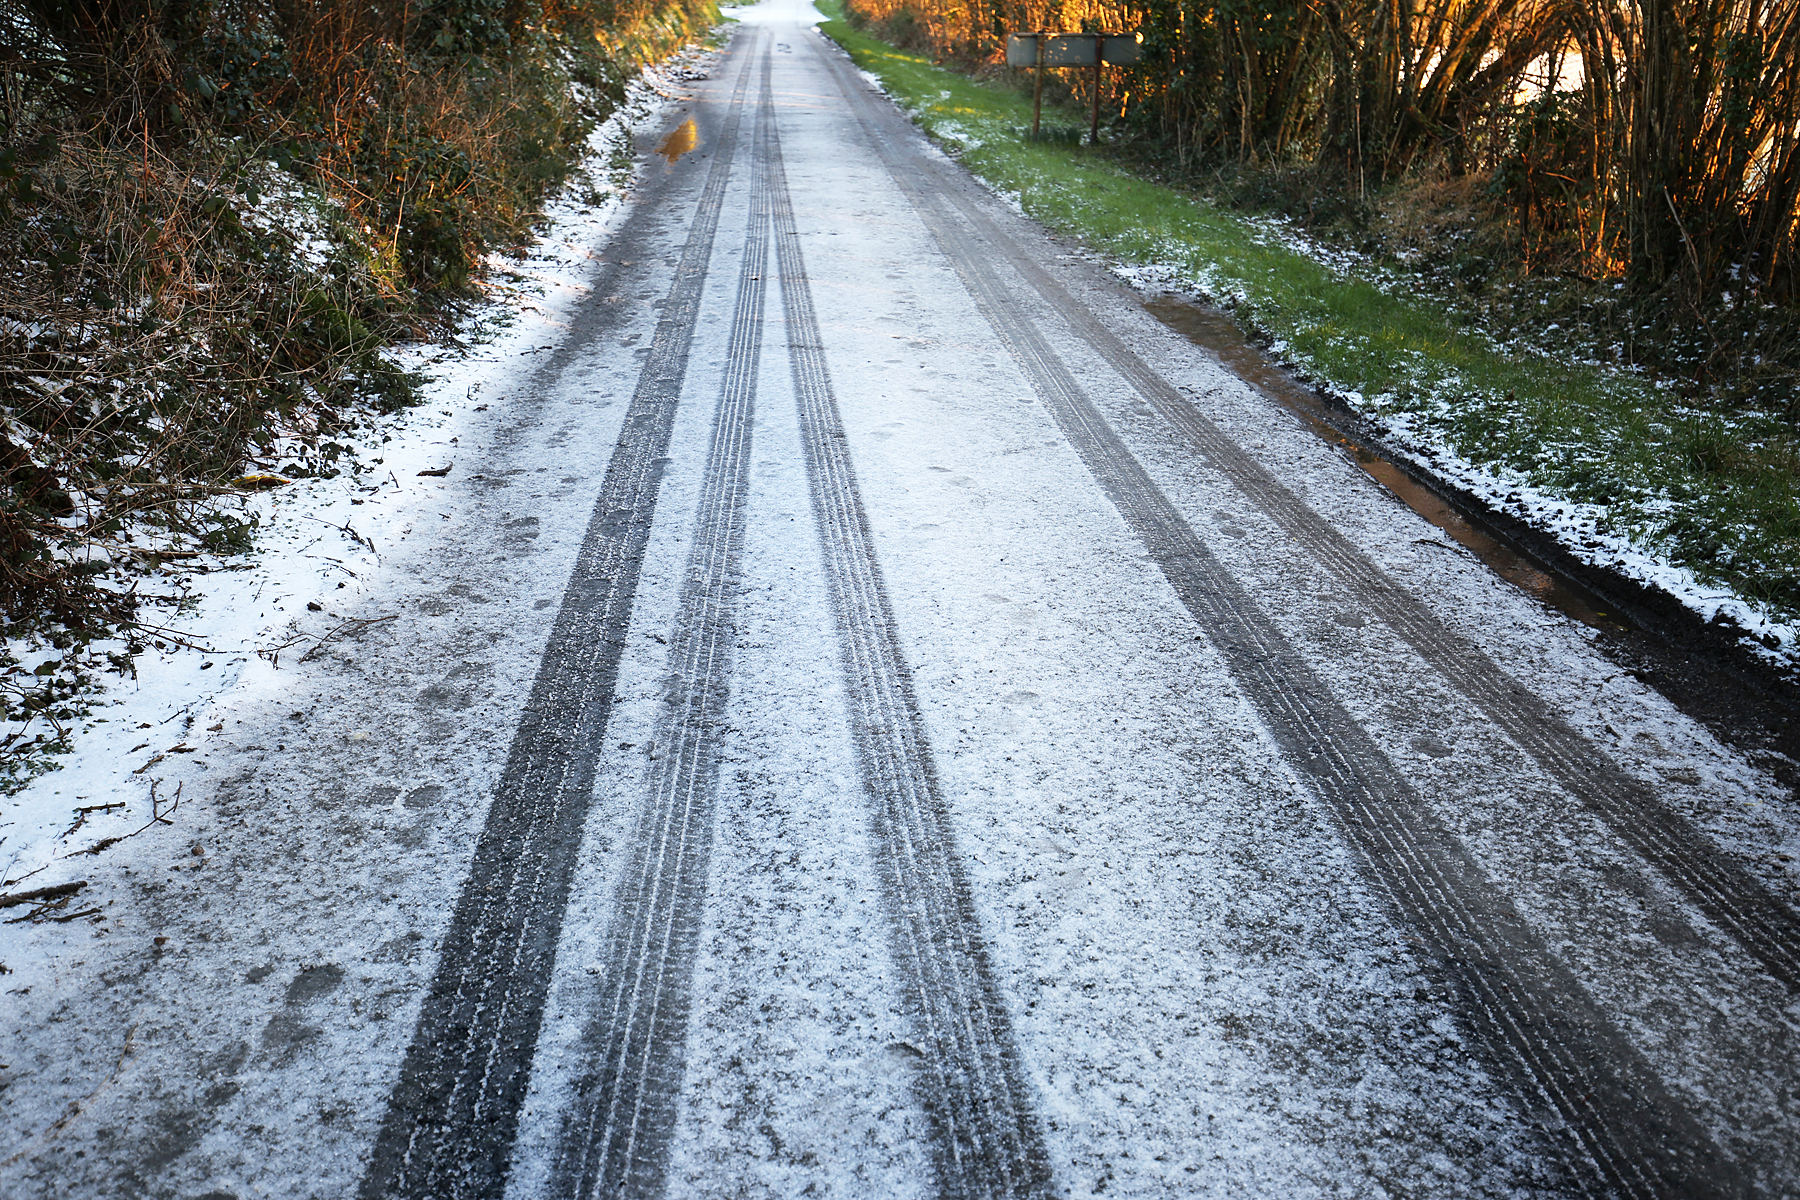 Icy roads made driving difficult. PICTURE: Barry Adams